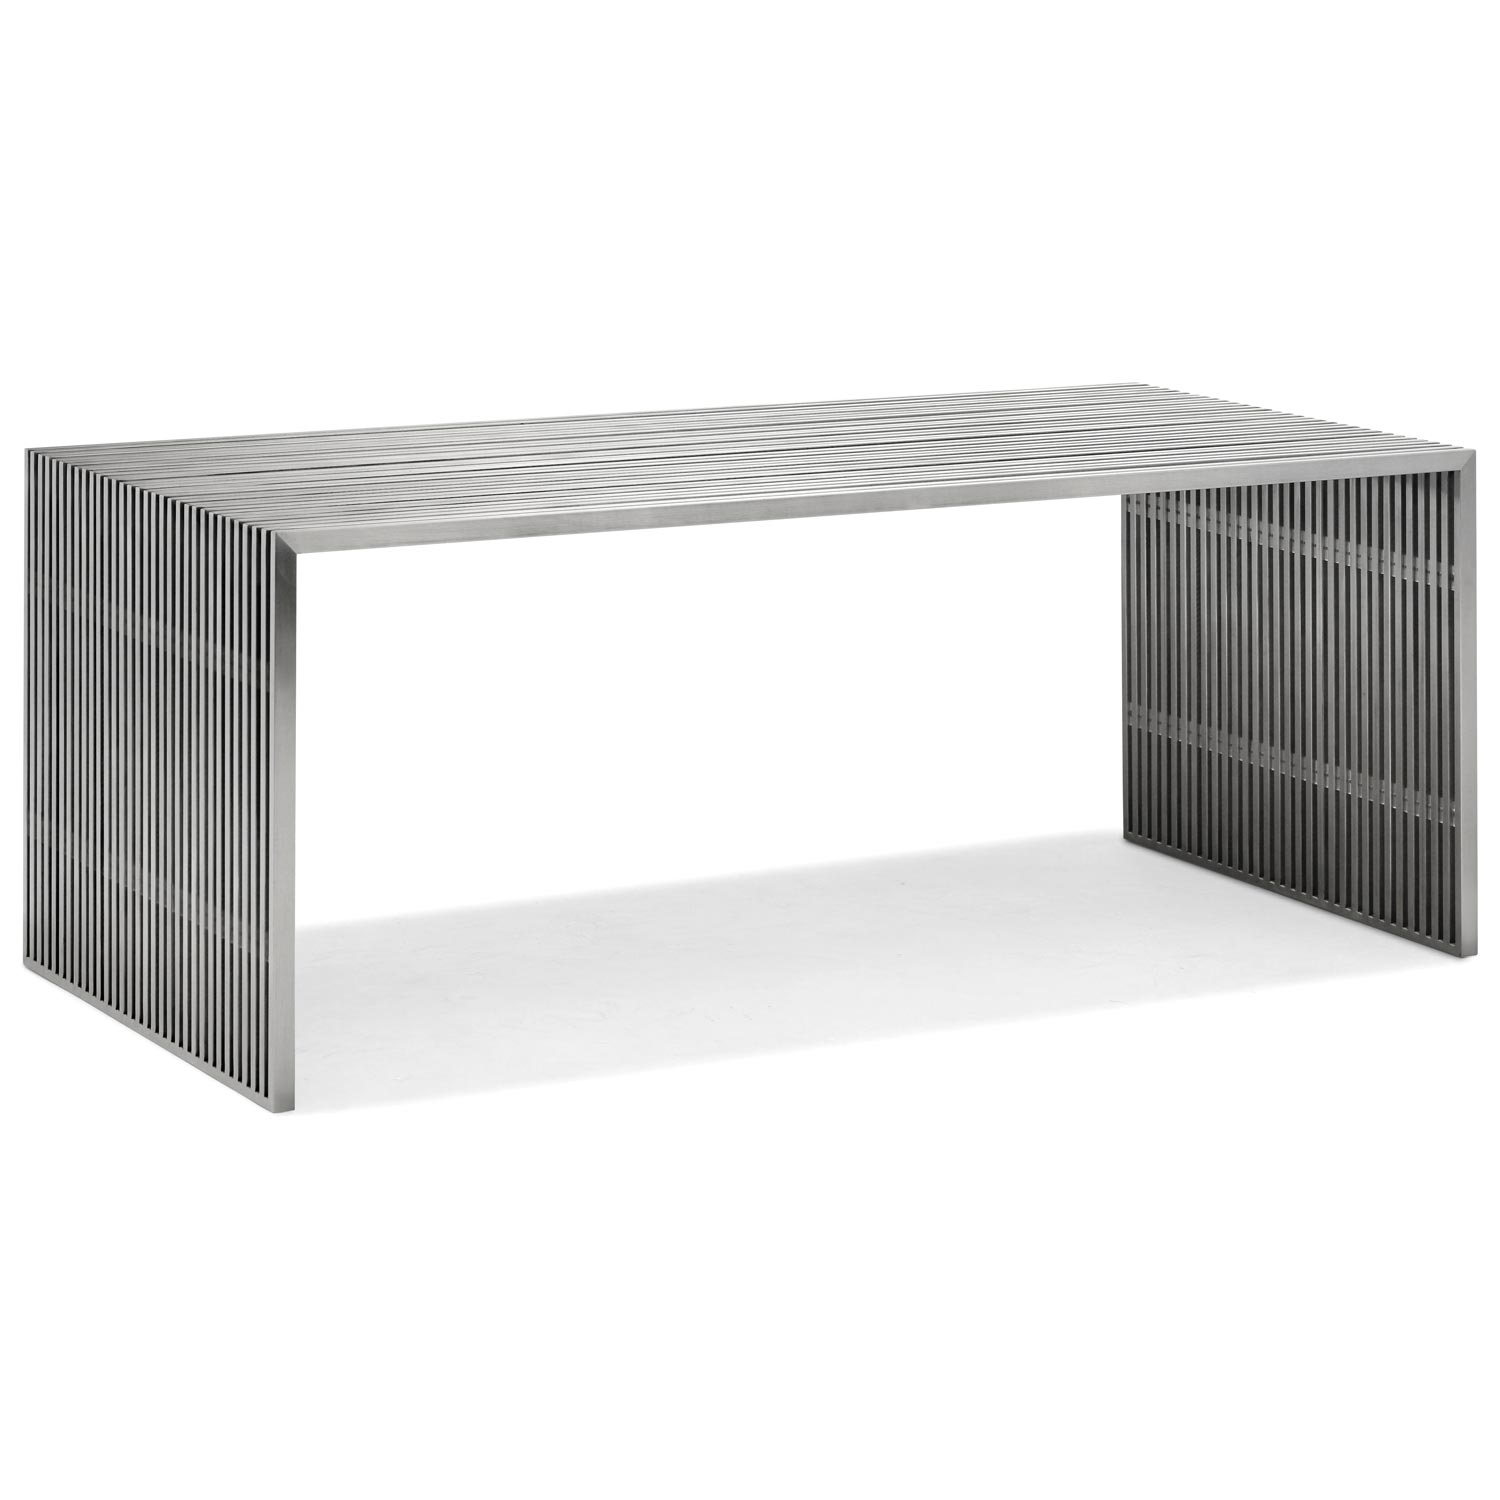 Novel Rectangular Dining / Office Table - Stainless Steel